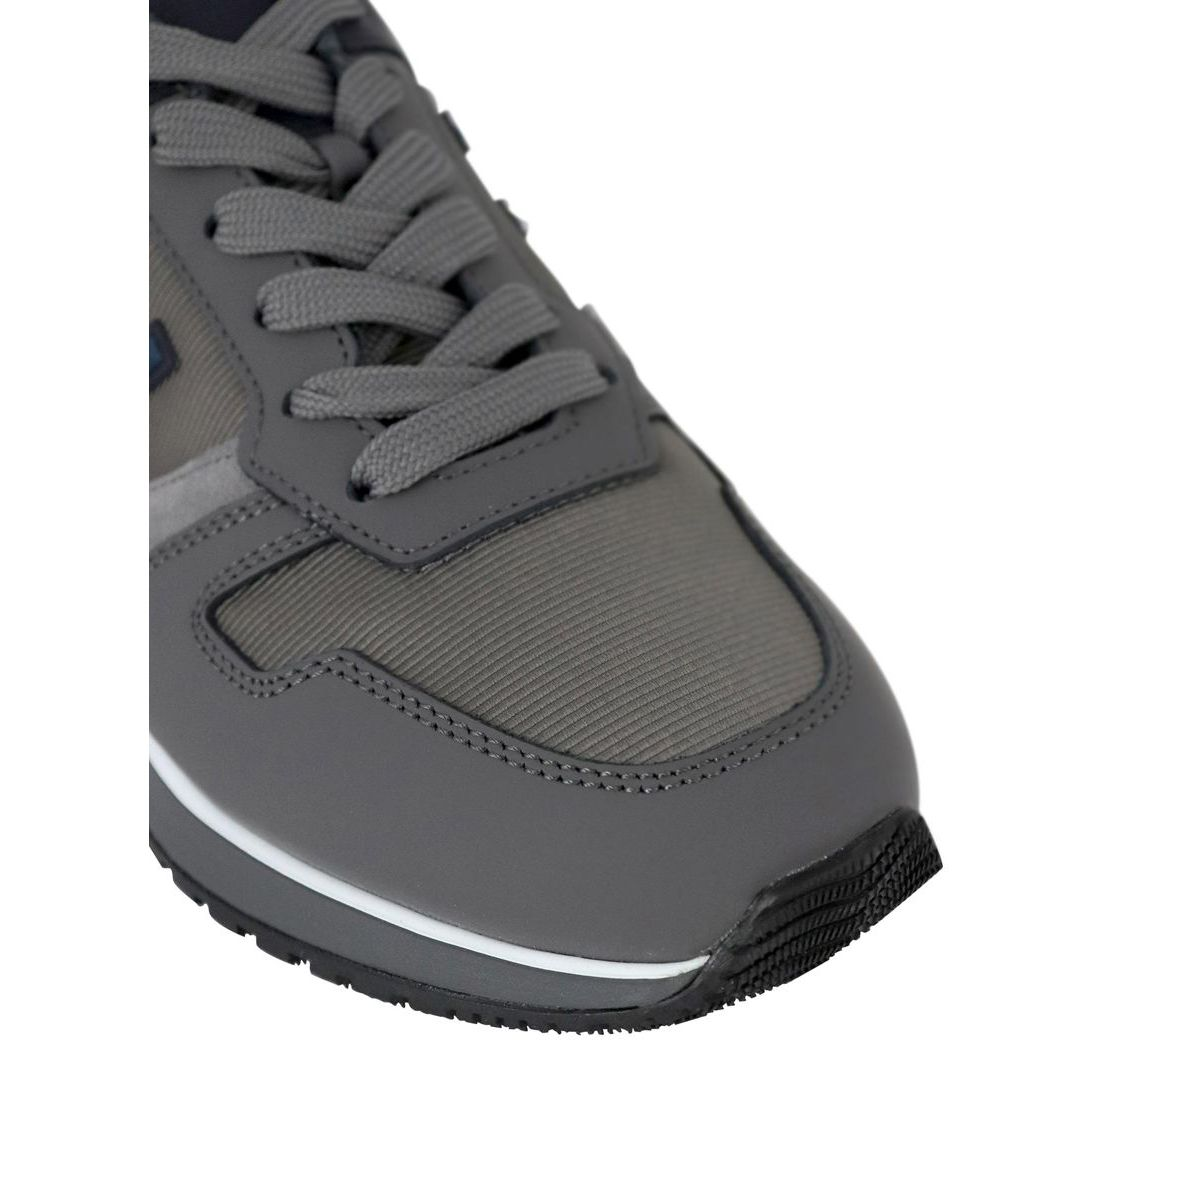 Sneakers in suede leather bottom 321 Grey Hogan